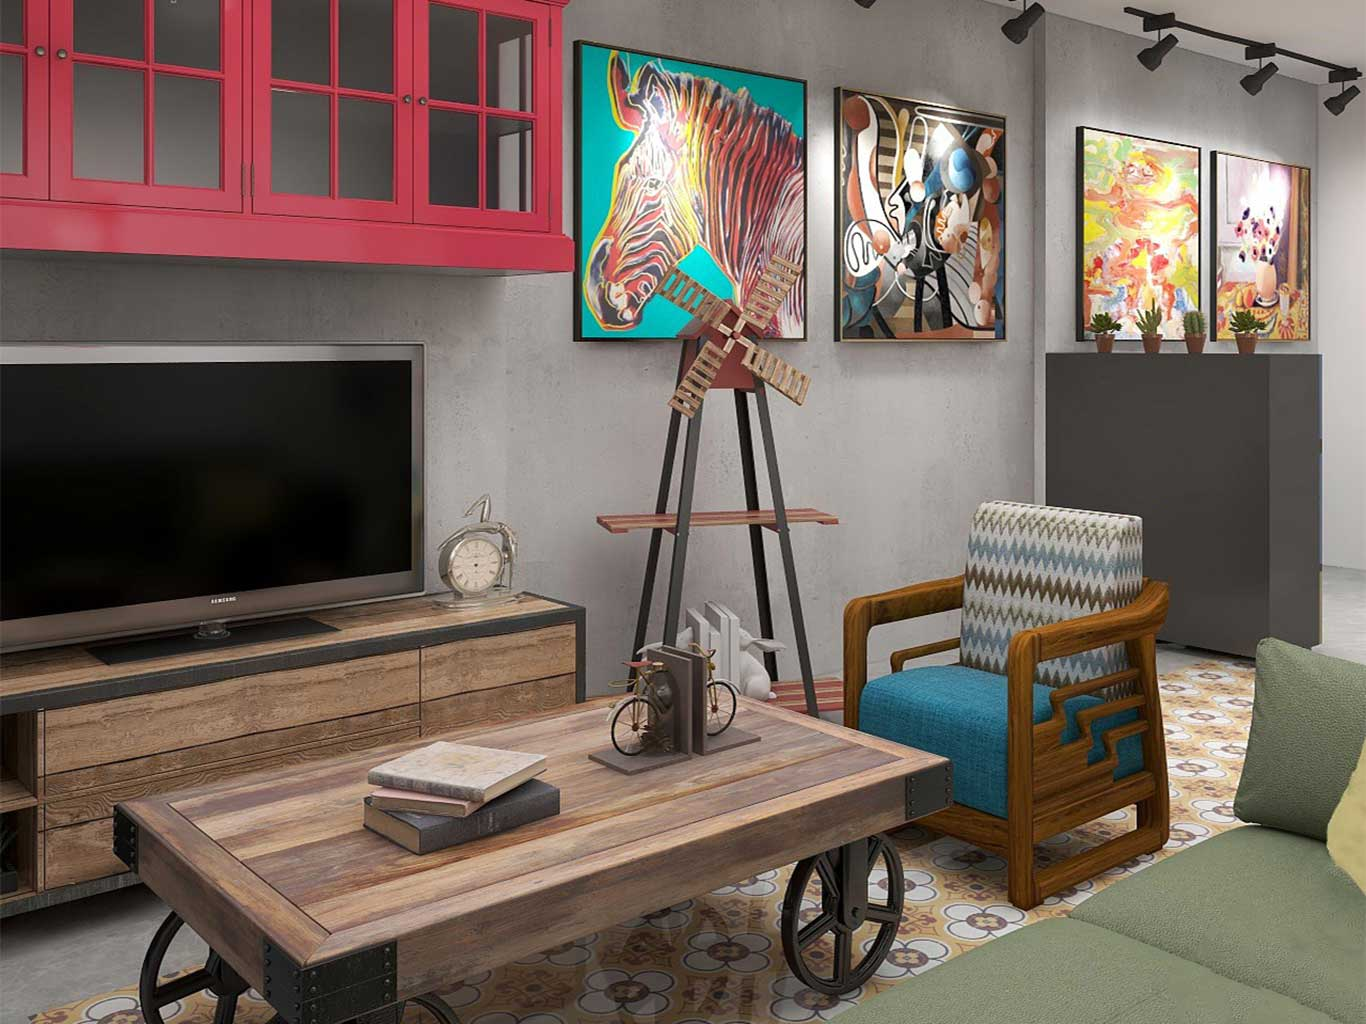 Retro colors and posters add a fun vibe to raw Industrial track lights and furniture